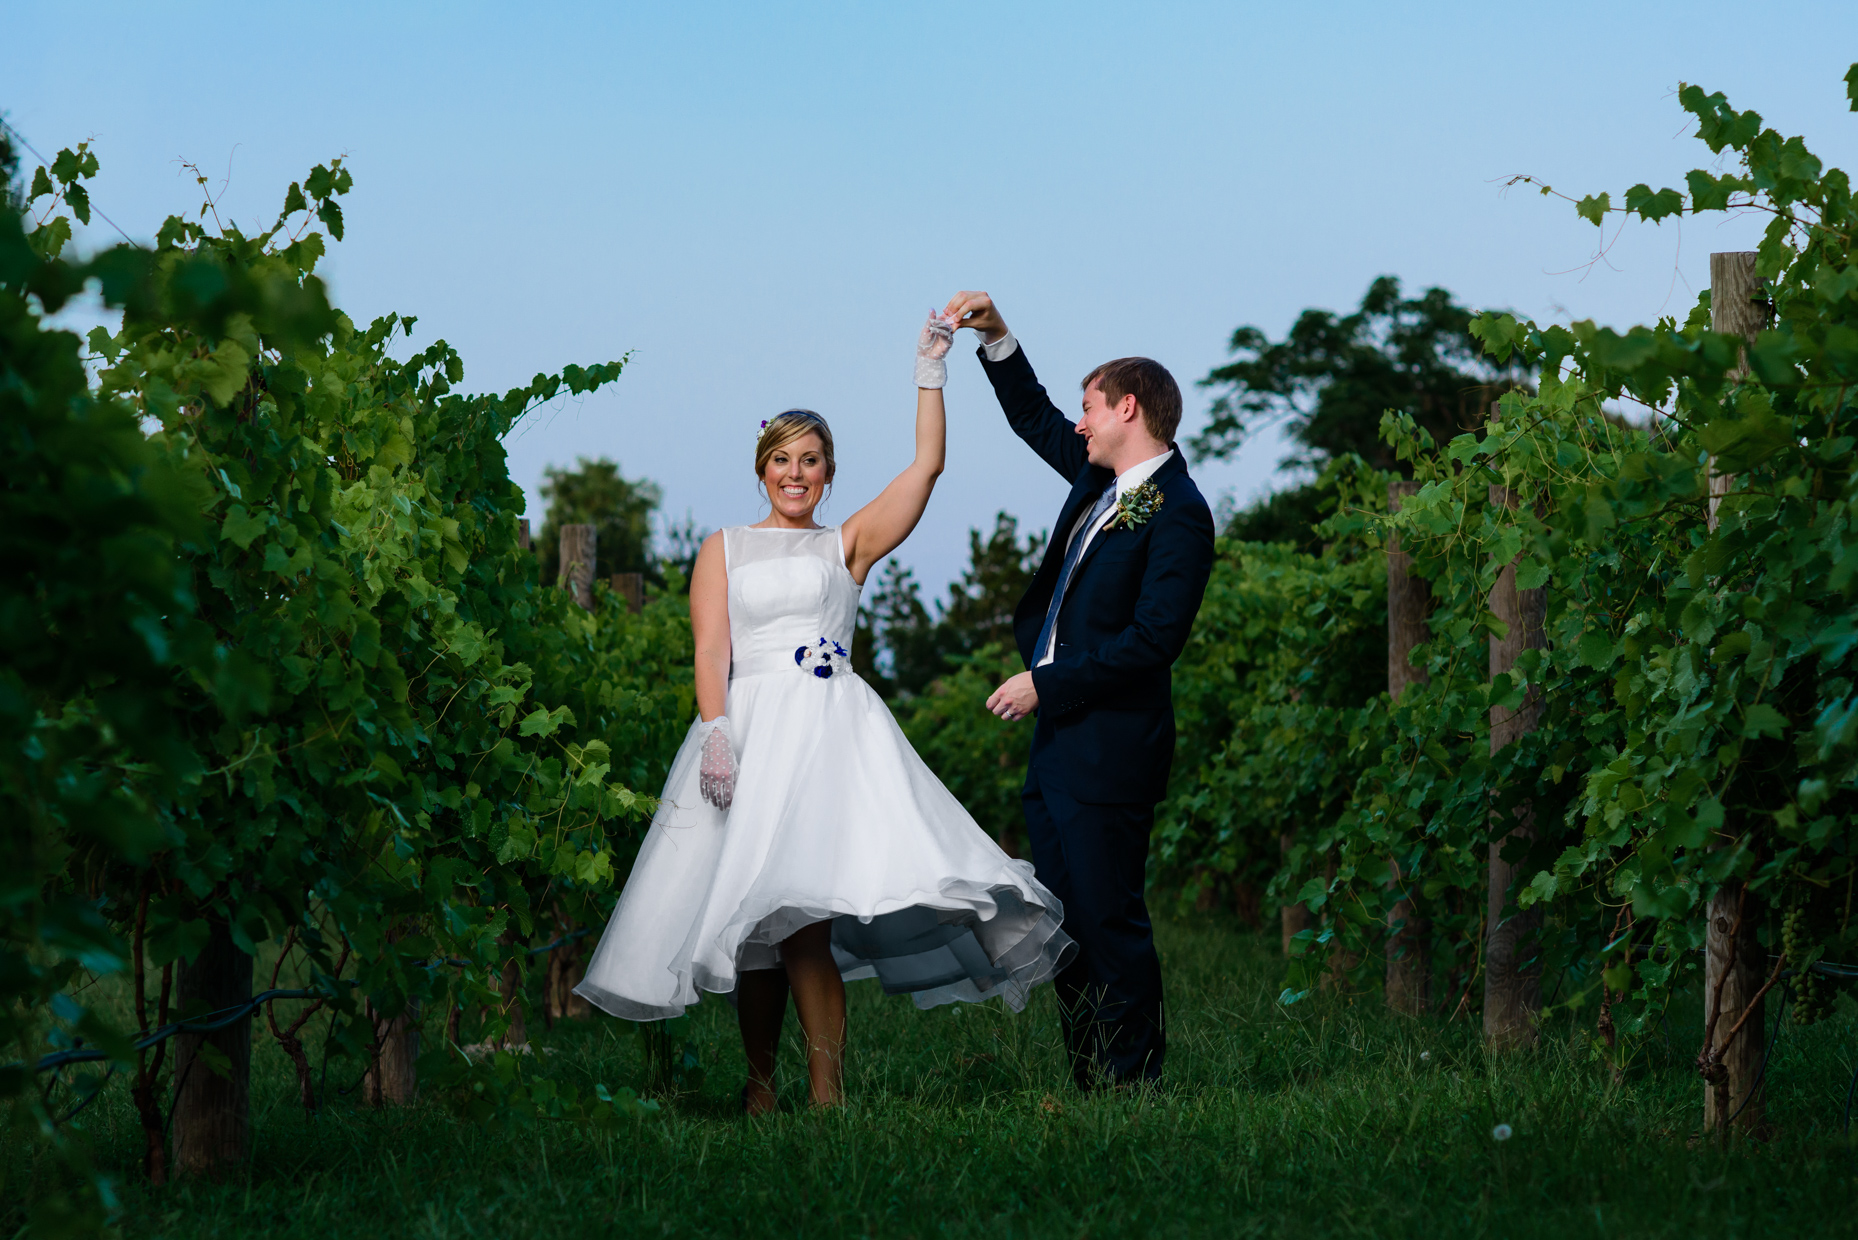 Chappel-lodge-vineyards-weddings-austin-photographers-texas-fine-art